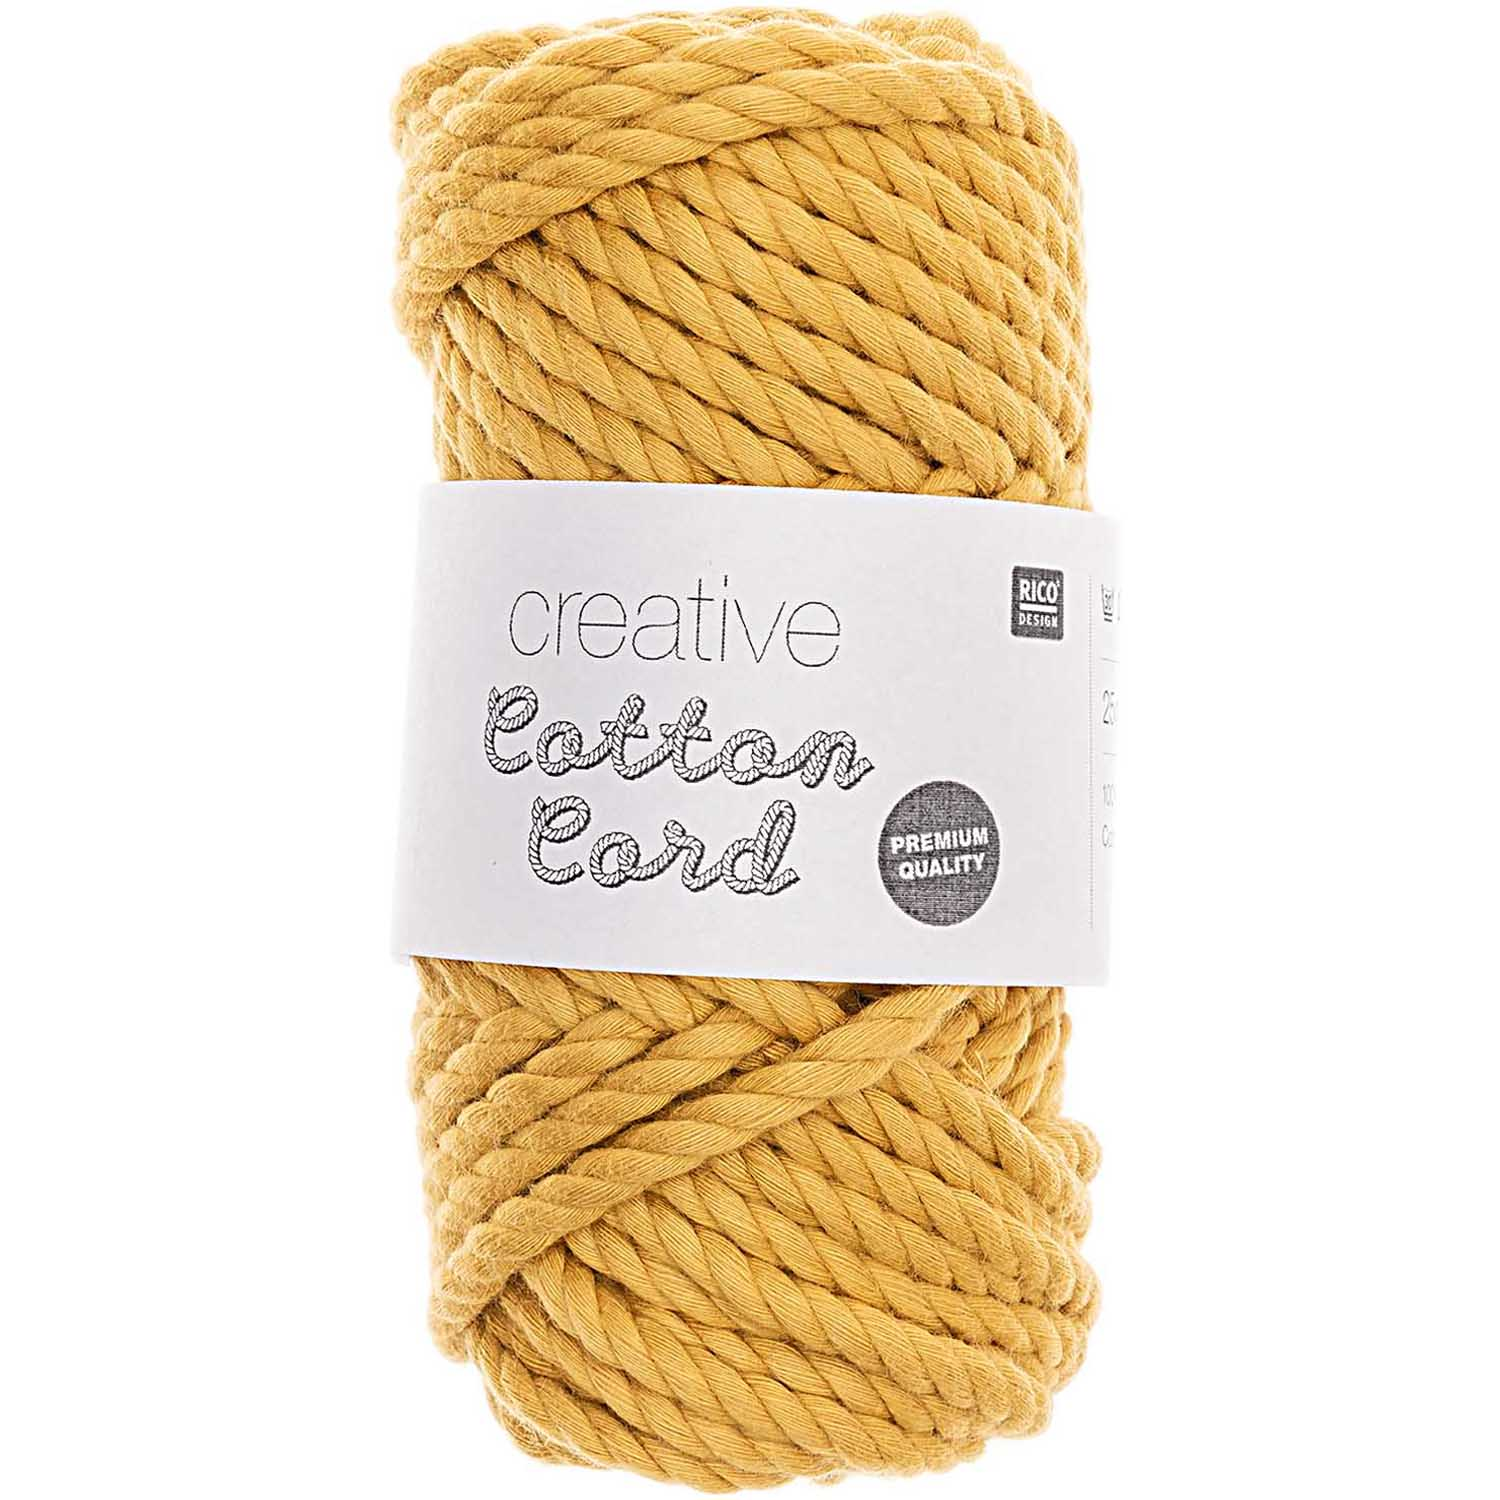 CREATIVE COTTON CORD 130G 25M, senf